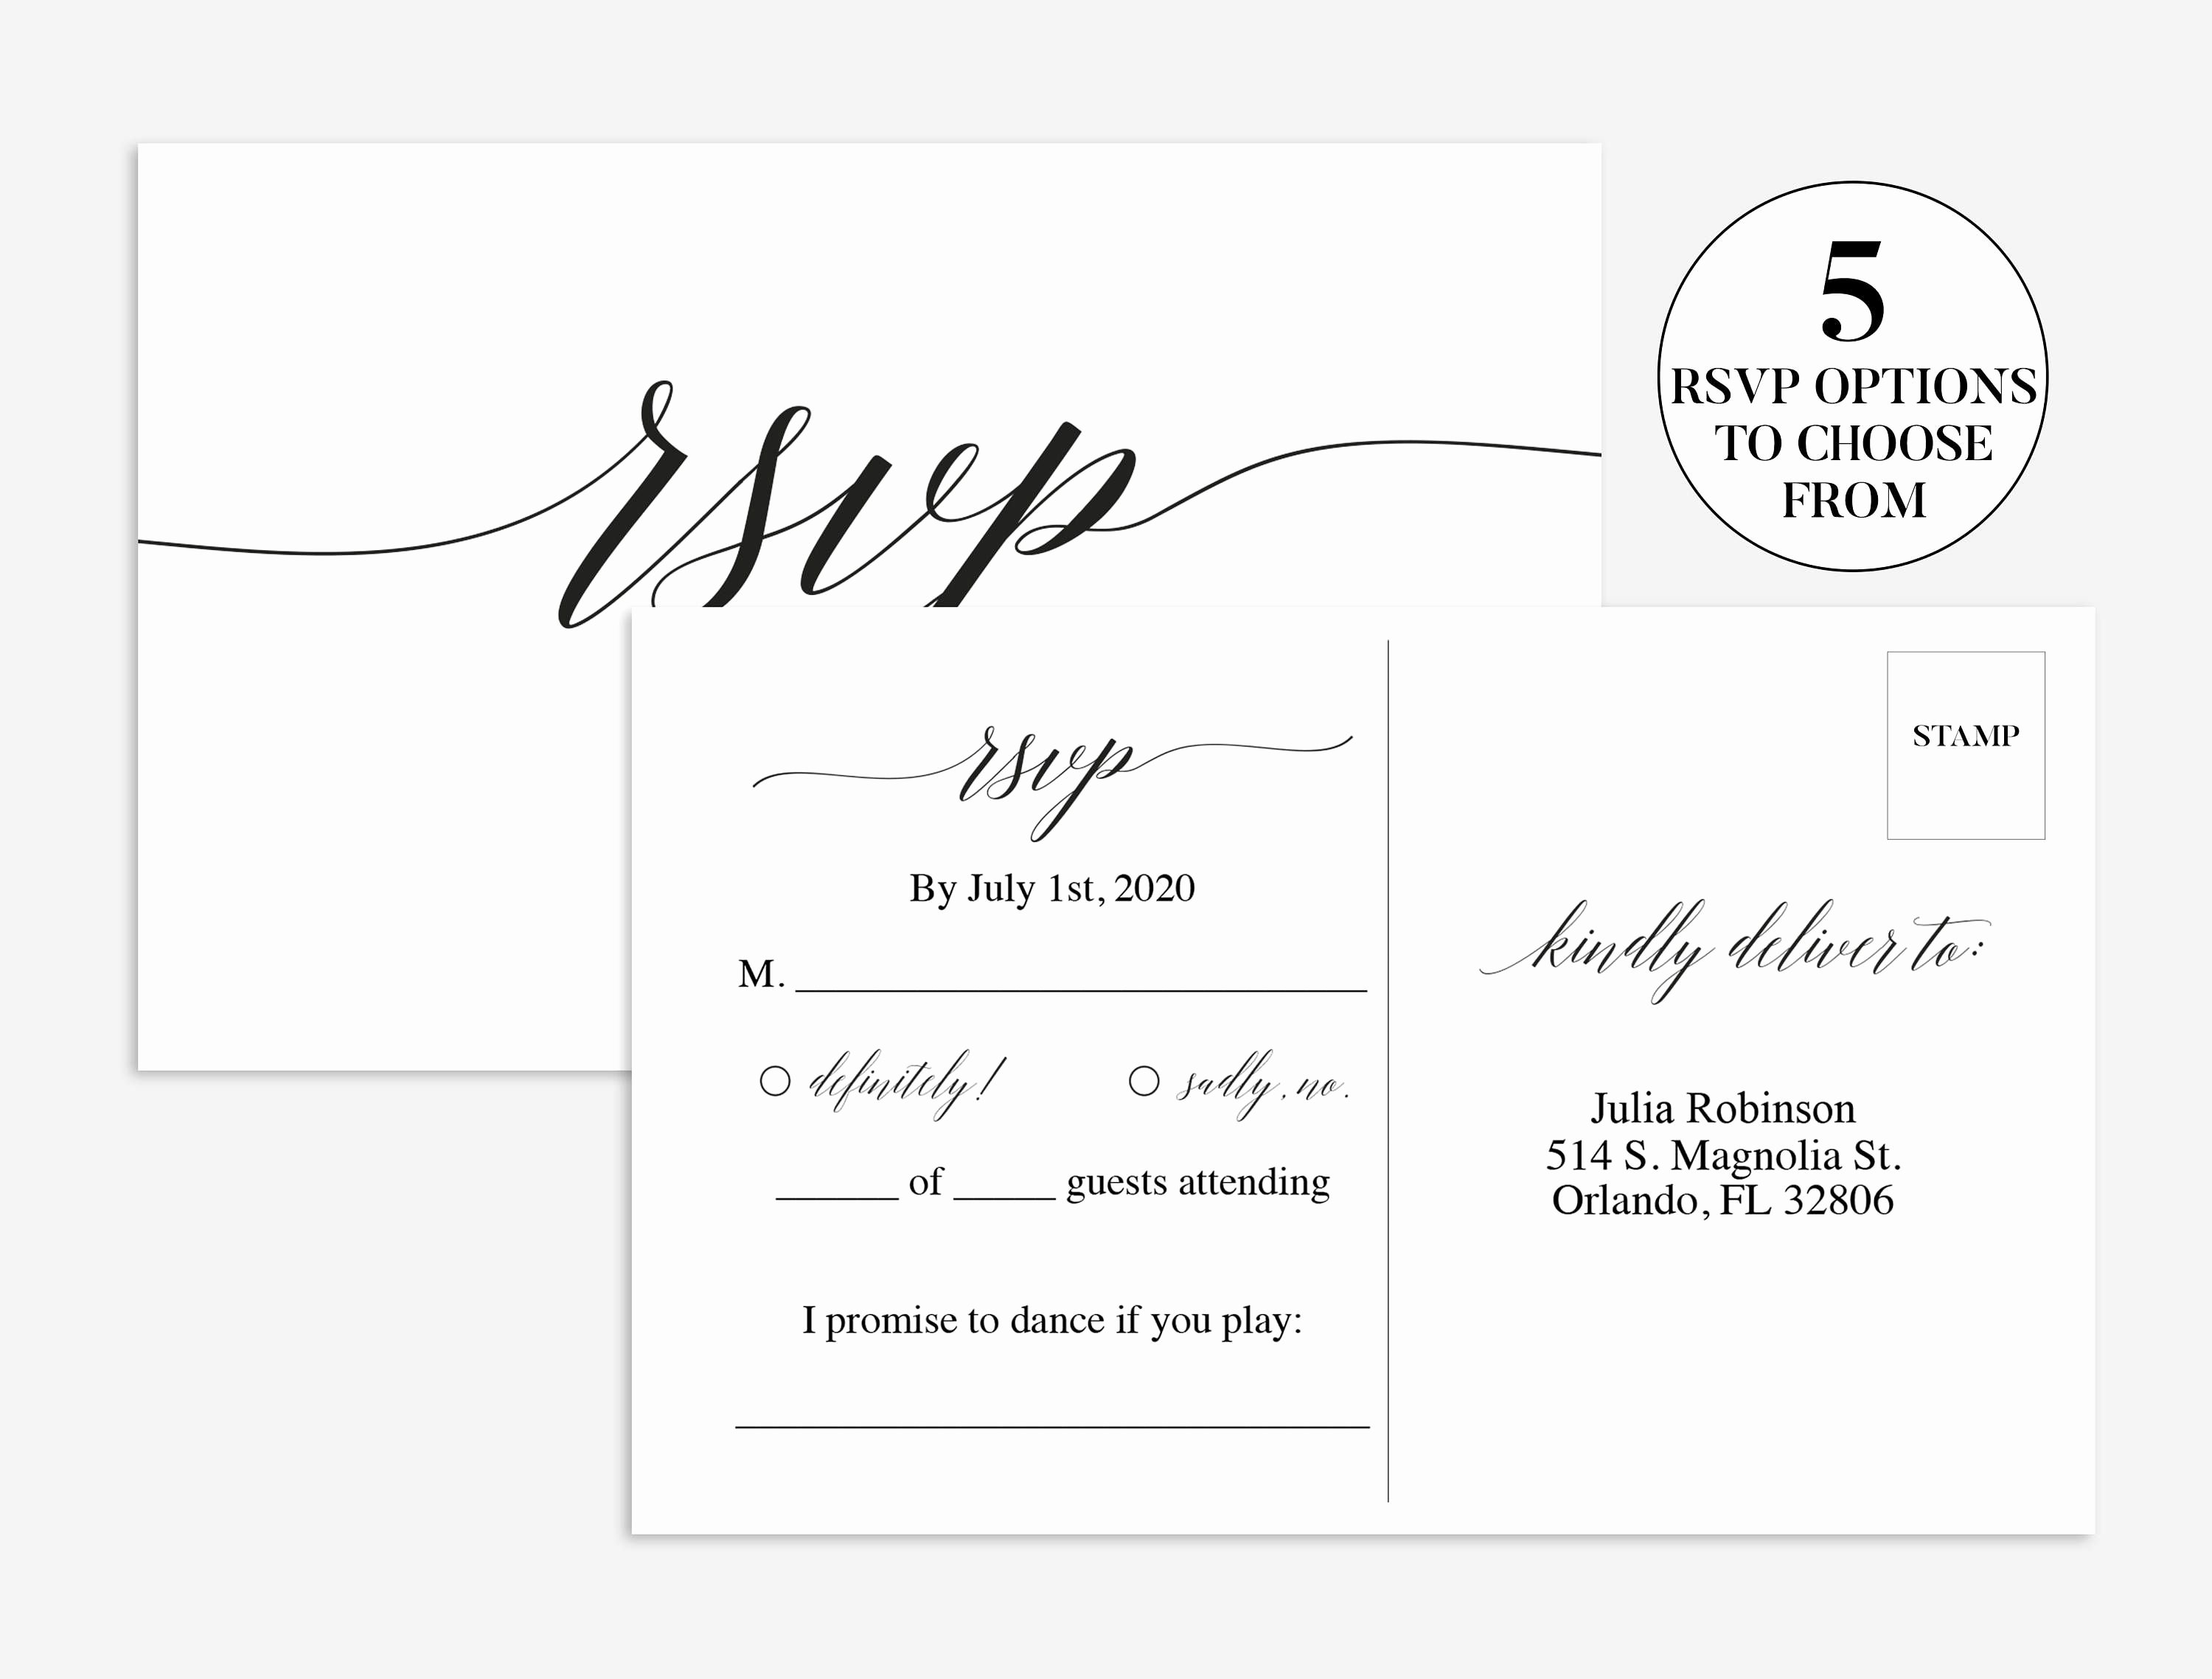 Wedding Rsvp Cards Template Unique Wedding Rsvp Card Wedding Rsvp Template